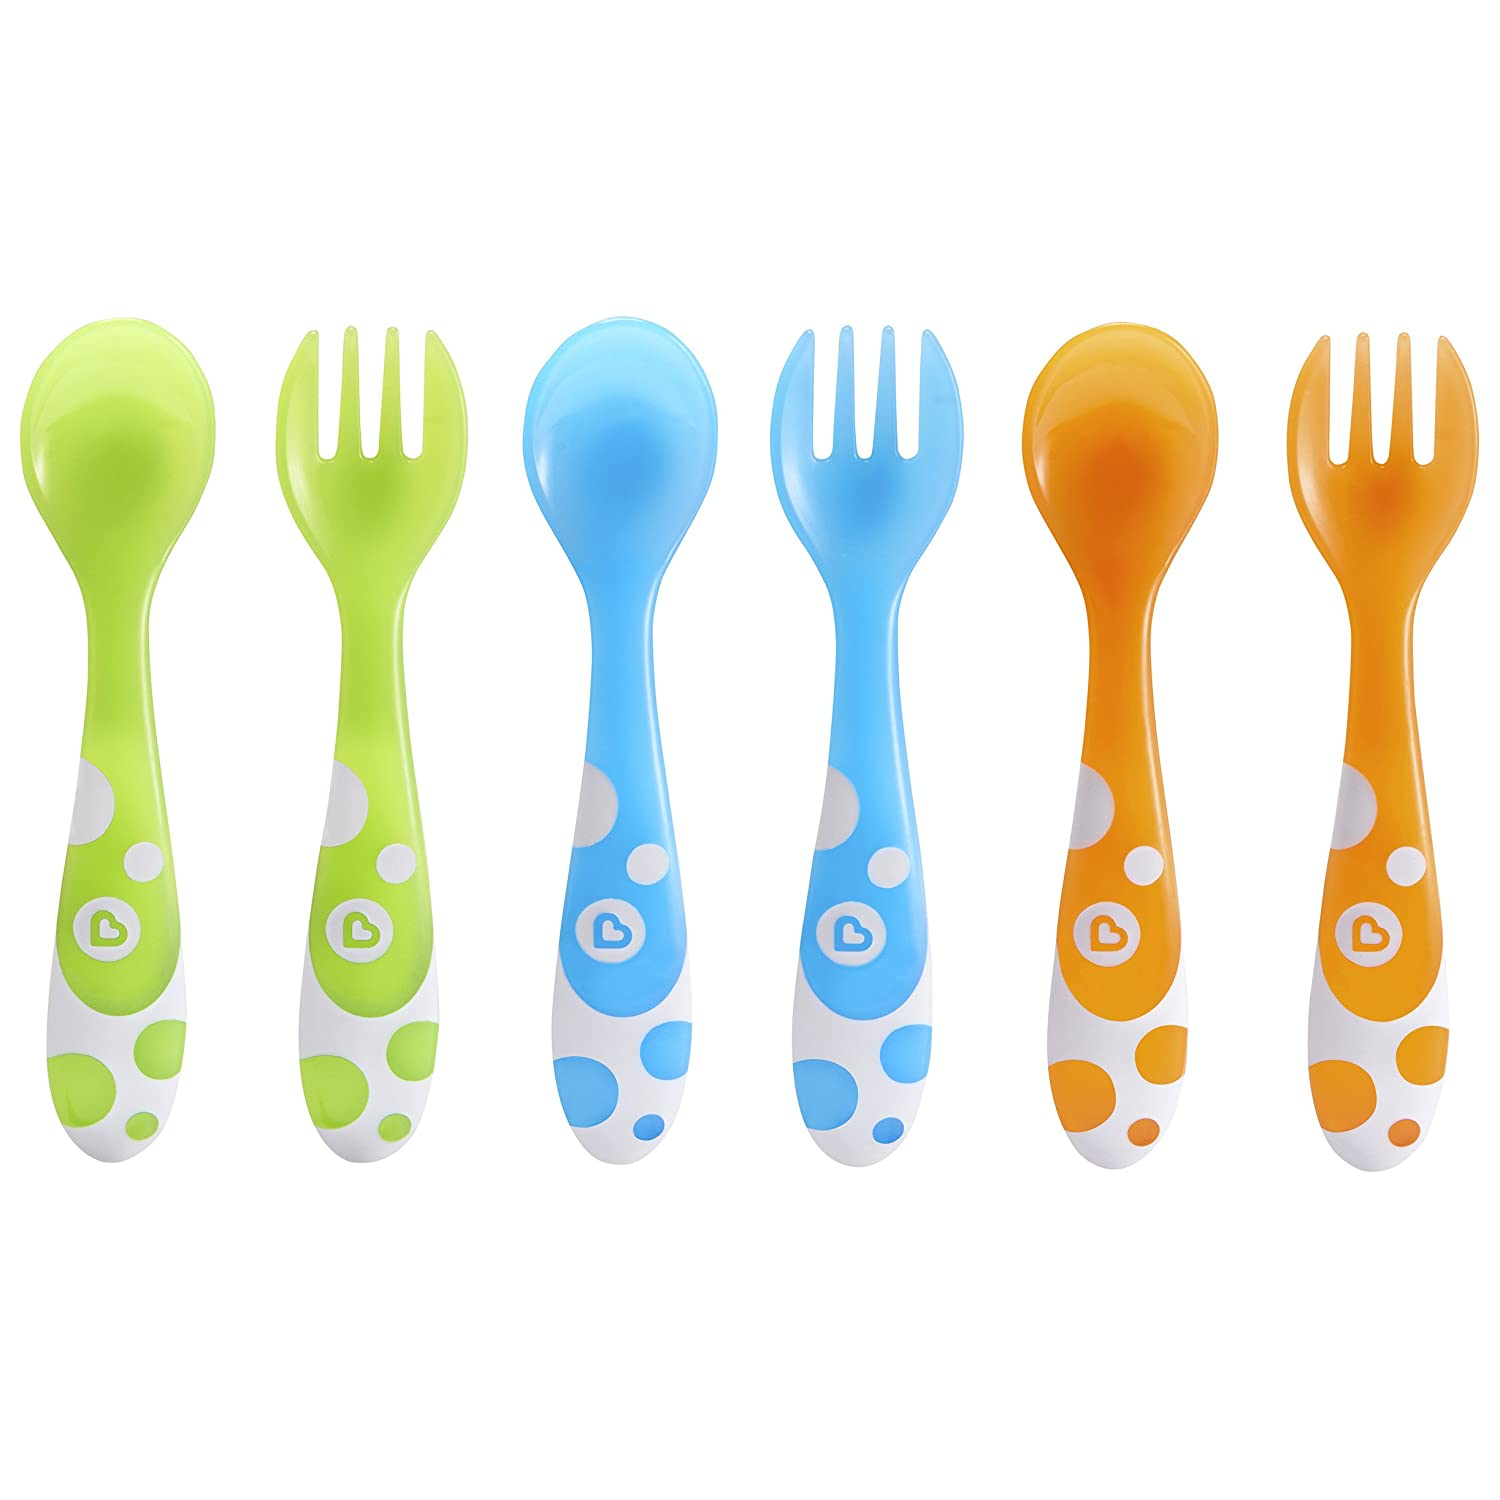 Top 10 Best Baby Spoons For Self Feeding (2020 Reviews & Buying Guide) 5